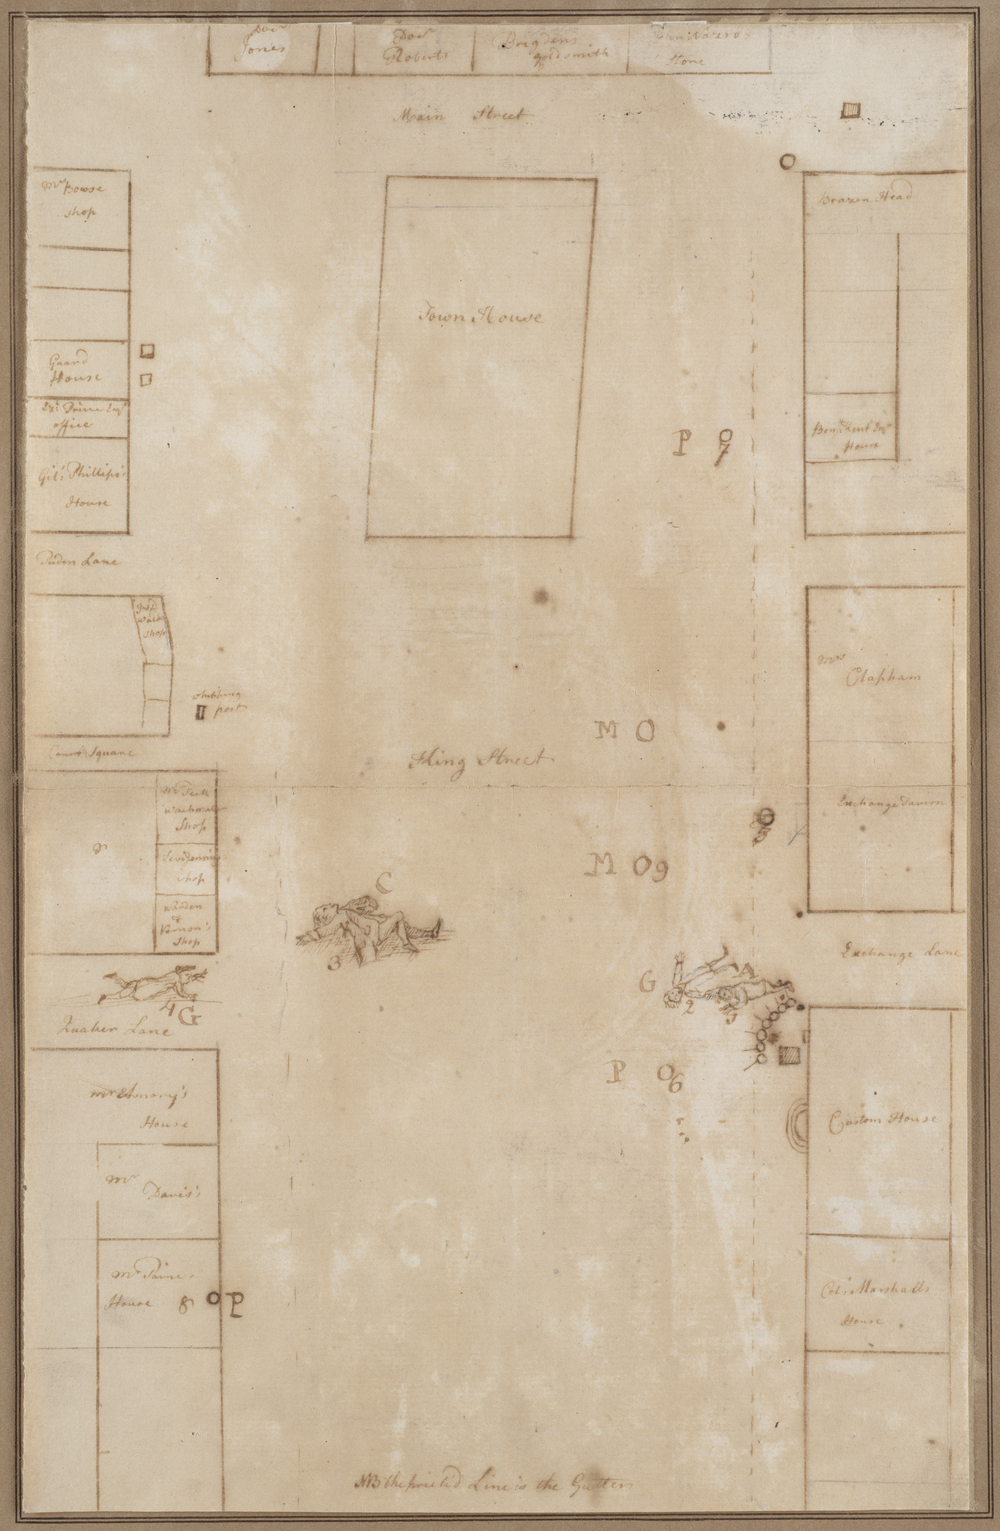 Planned Boston massacre, 1770 (diagram by Paul Revere) -  Map reproduction courtesy of the  Norman B. Leventhal Map Center at the Boston Public Library